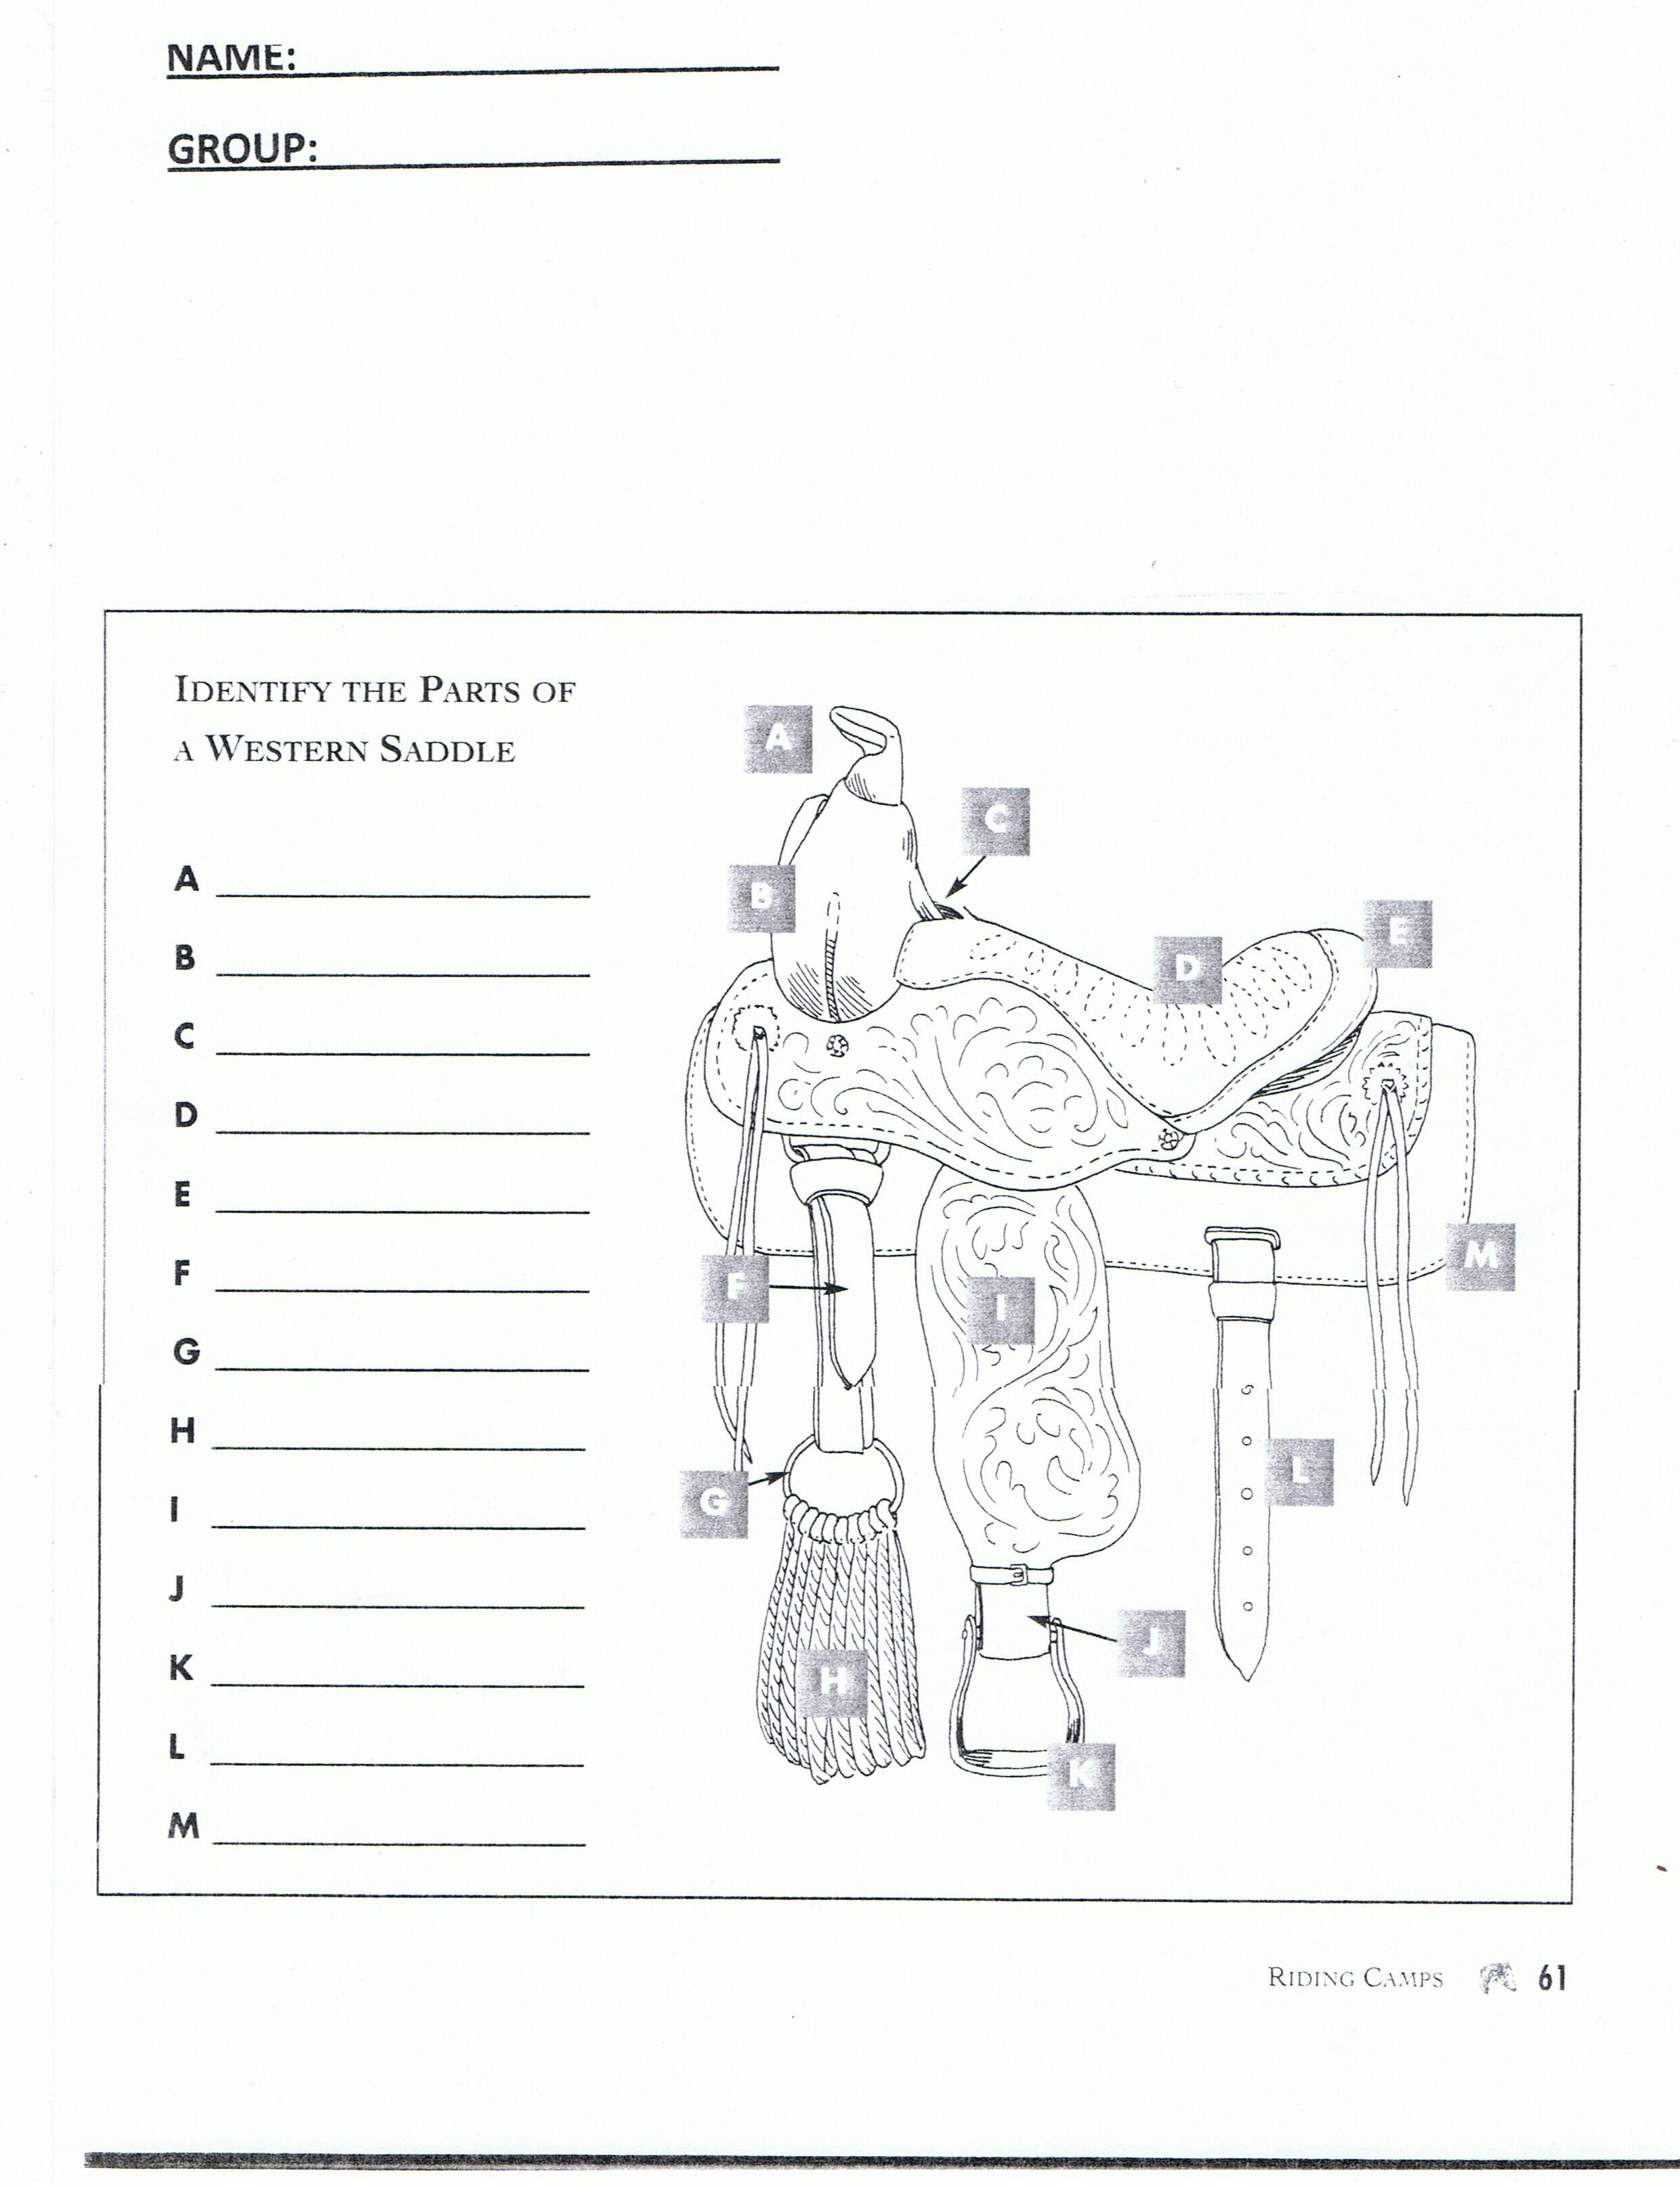 Worksheet Part Of Saddle